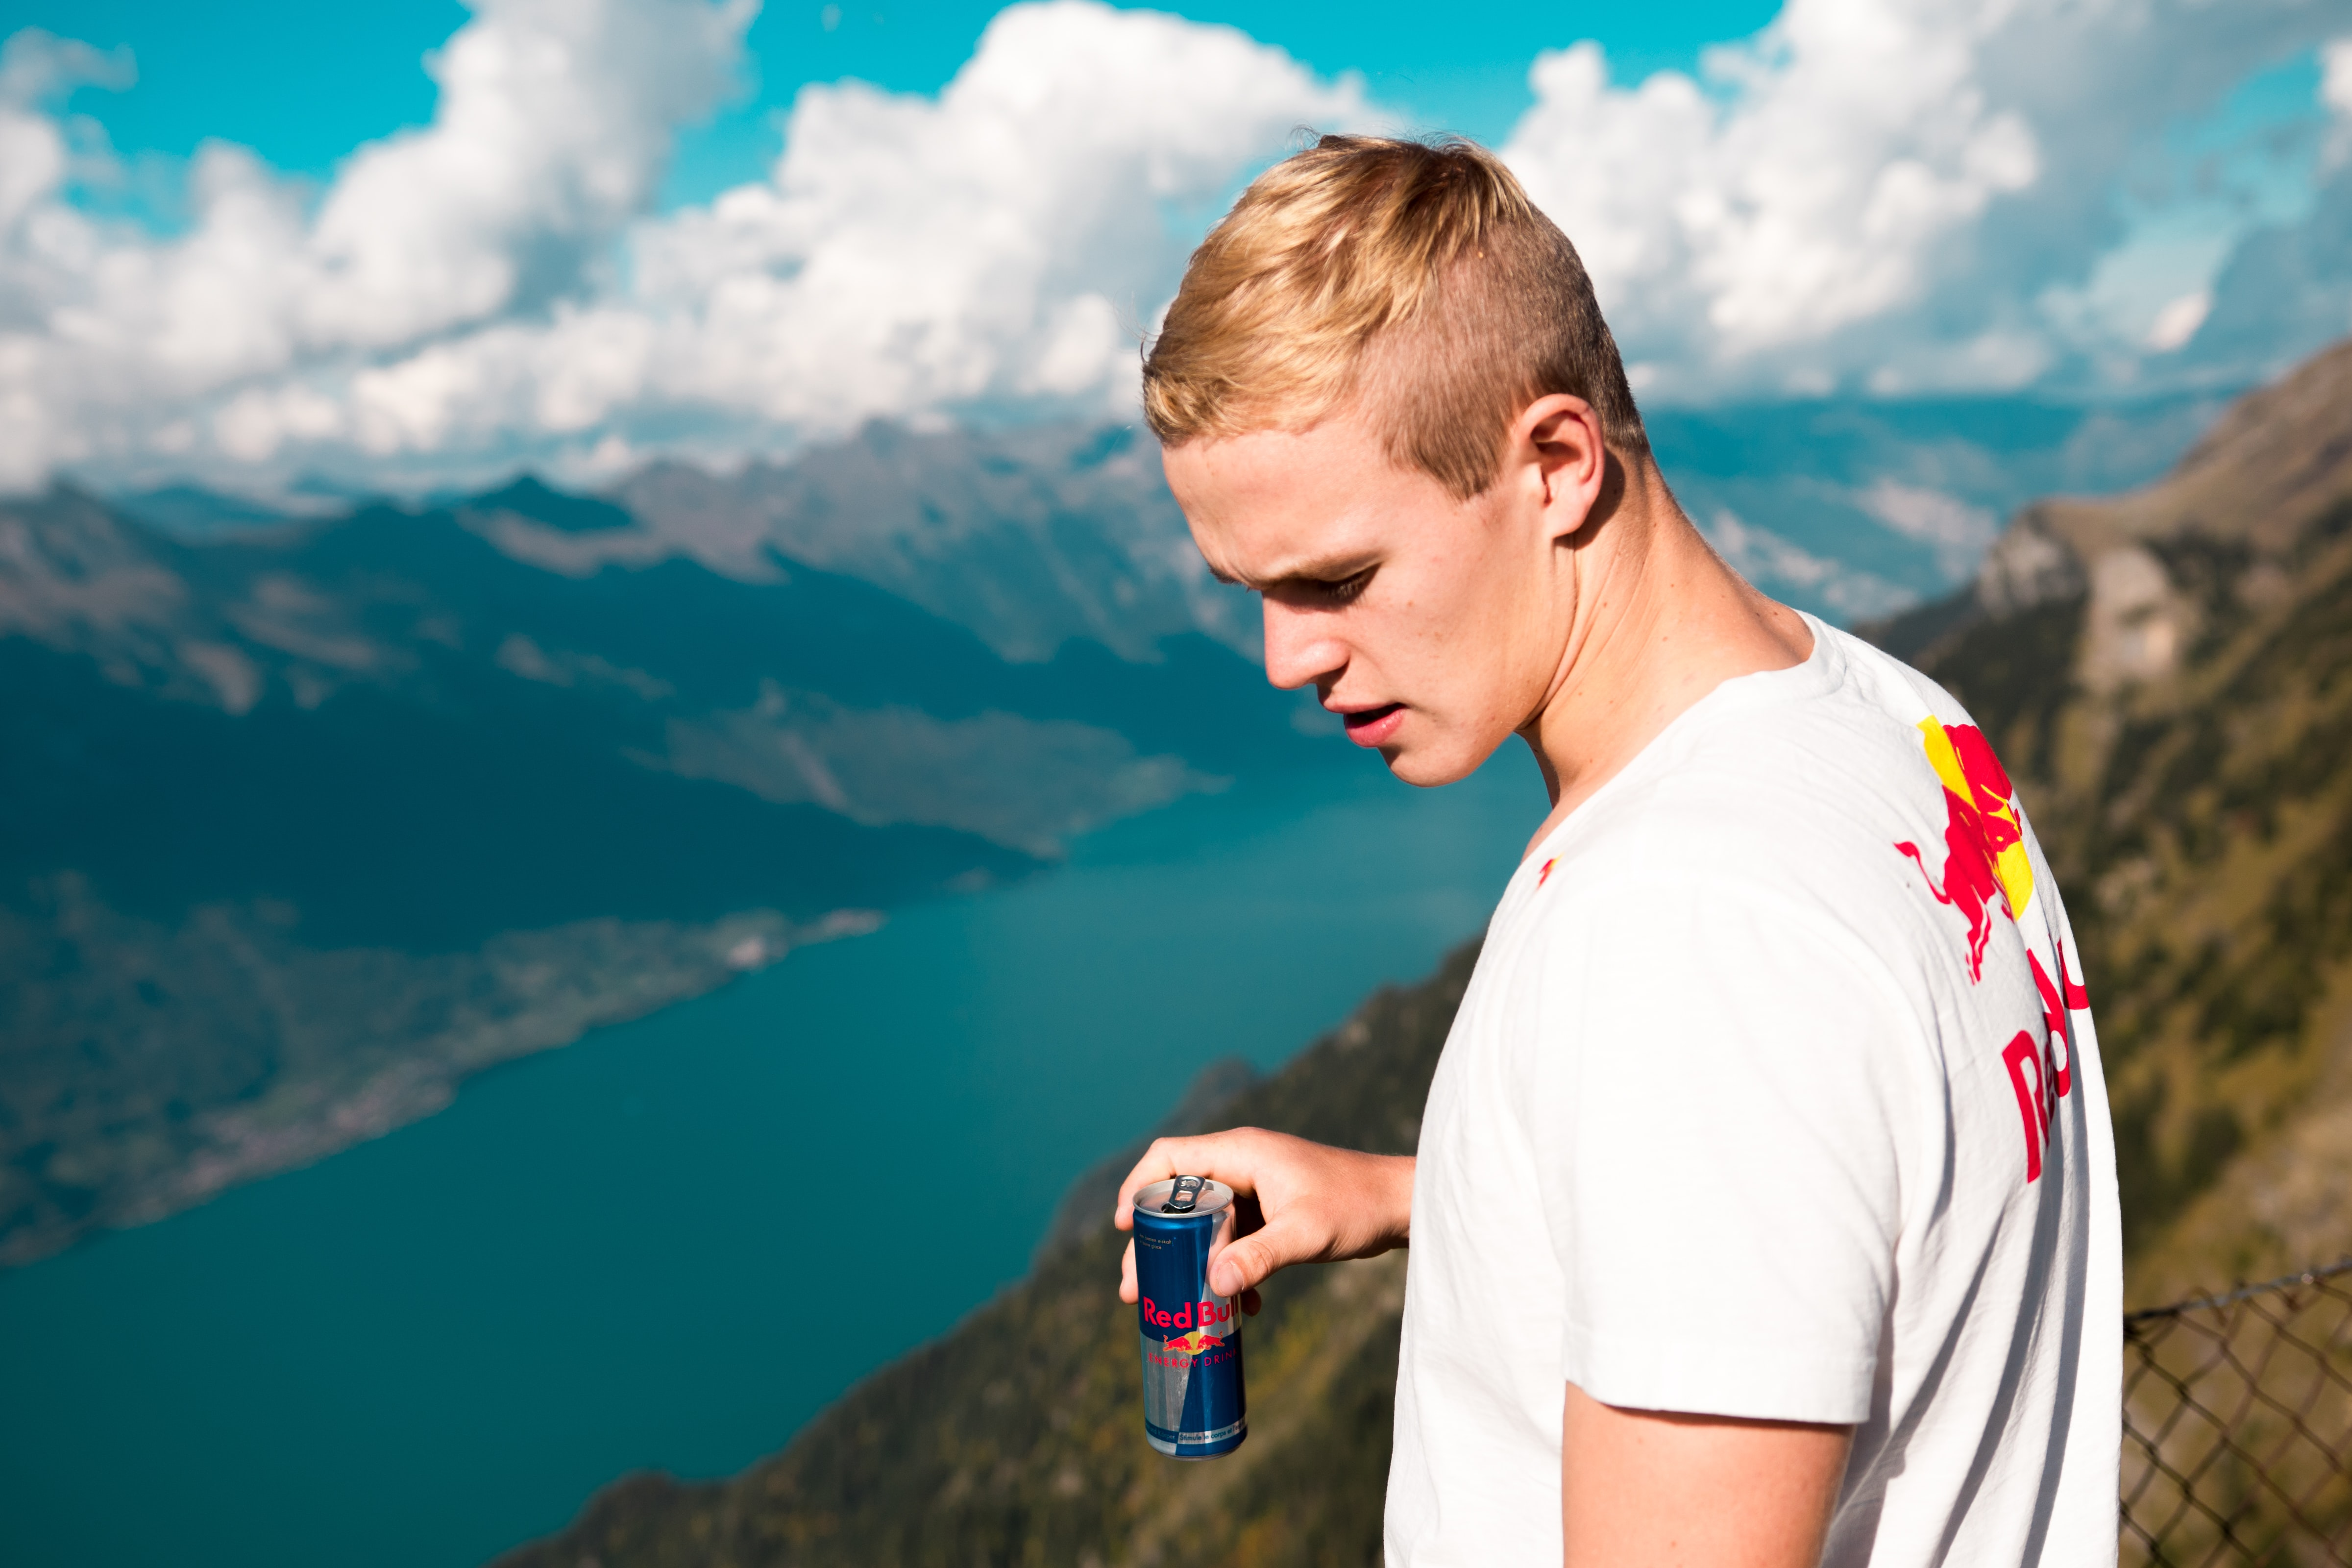 man wearing white and red crew-neck t-shirt holding Red Bull energy drink can standing on summit with chain link fence looking at body of water during daytime